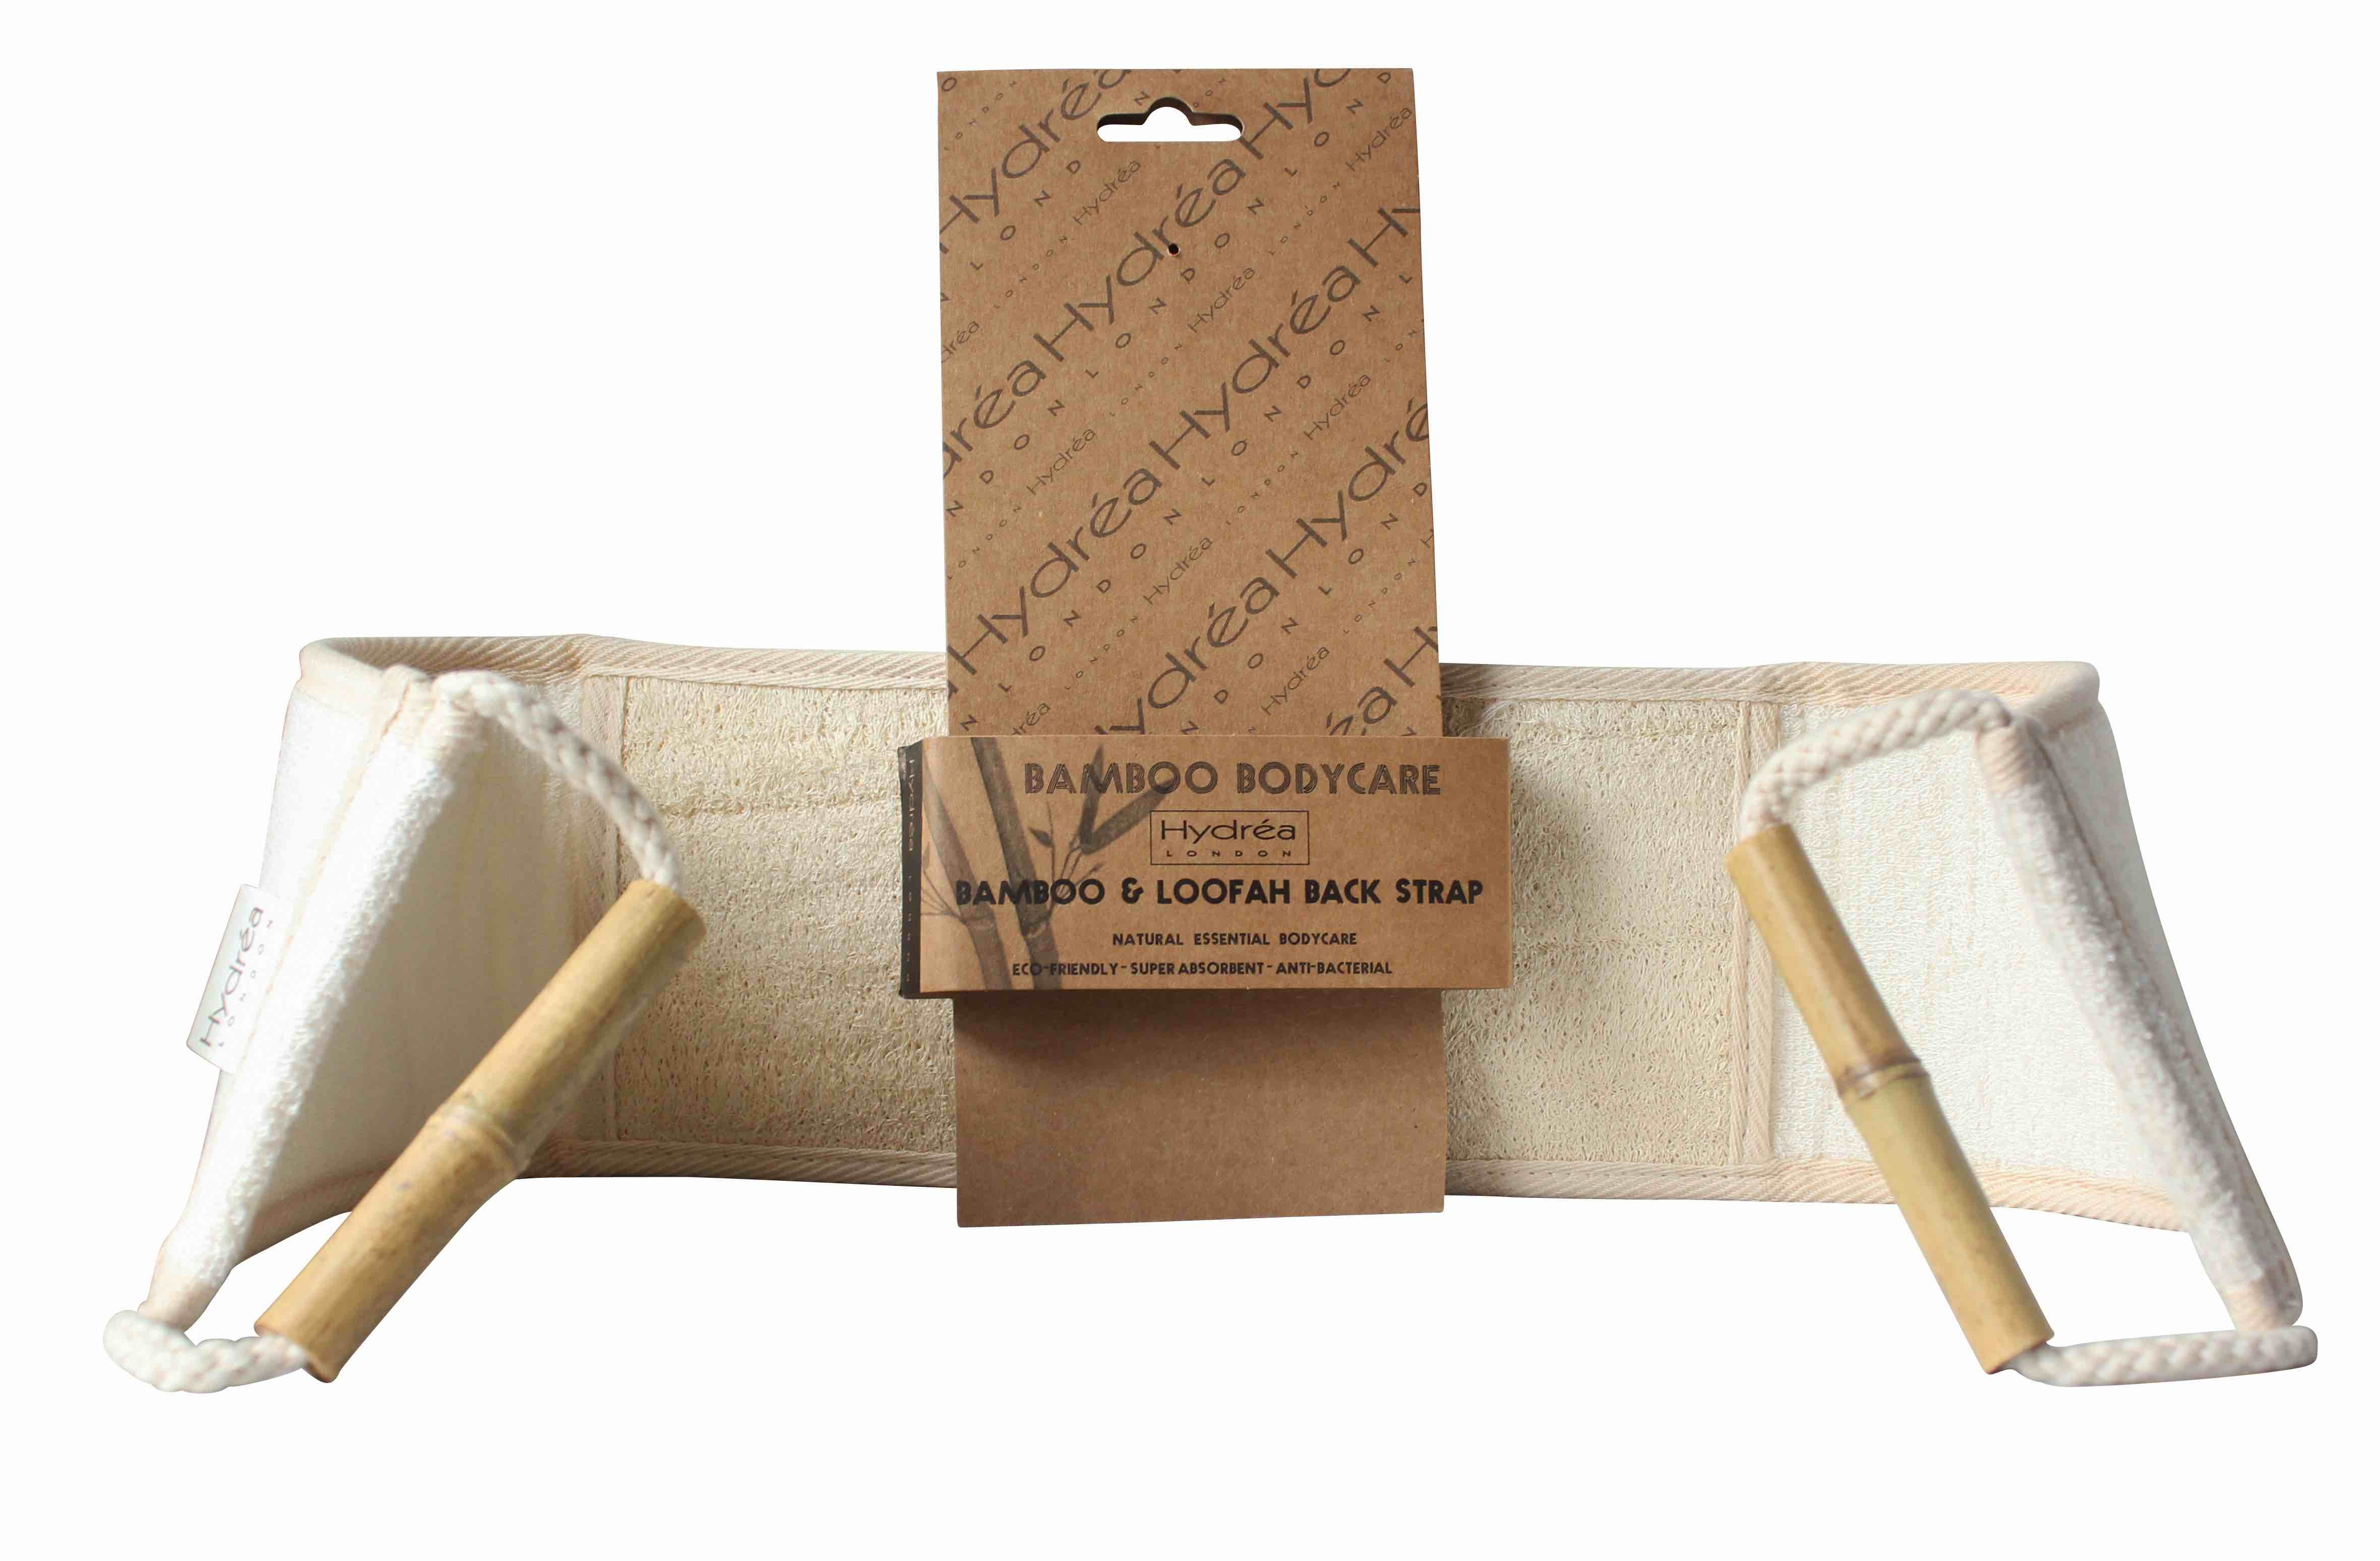 Bamboo Loofah Back Strap by Hydrea London